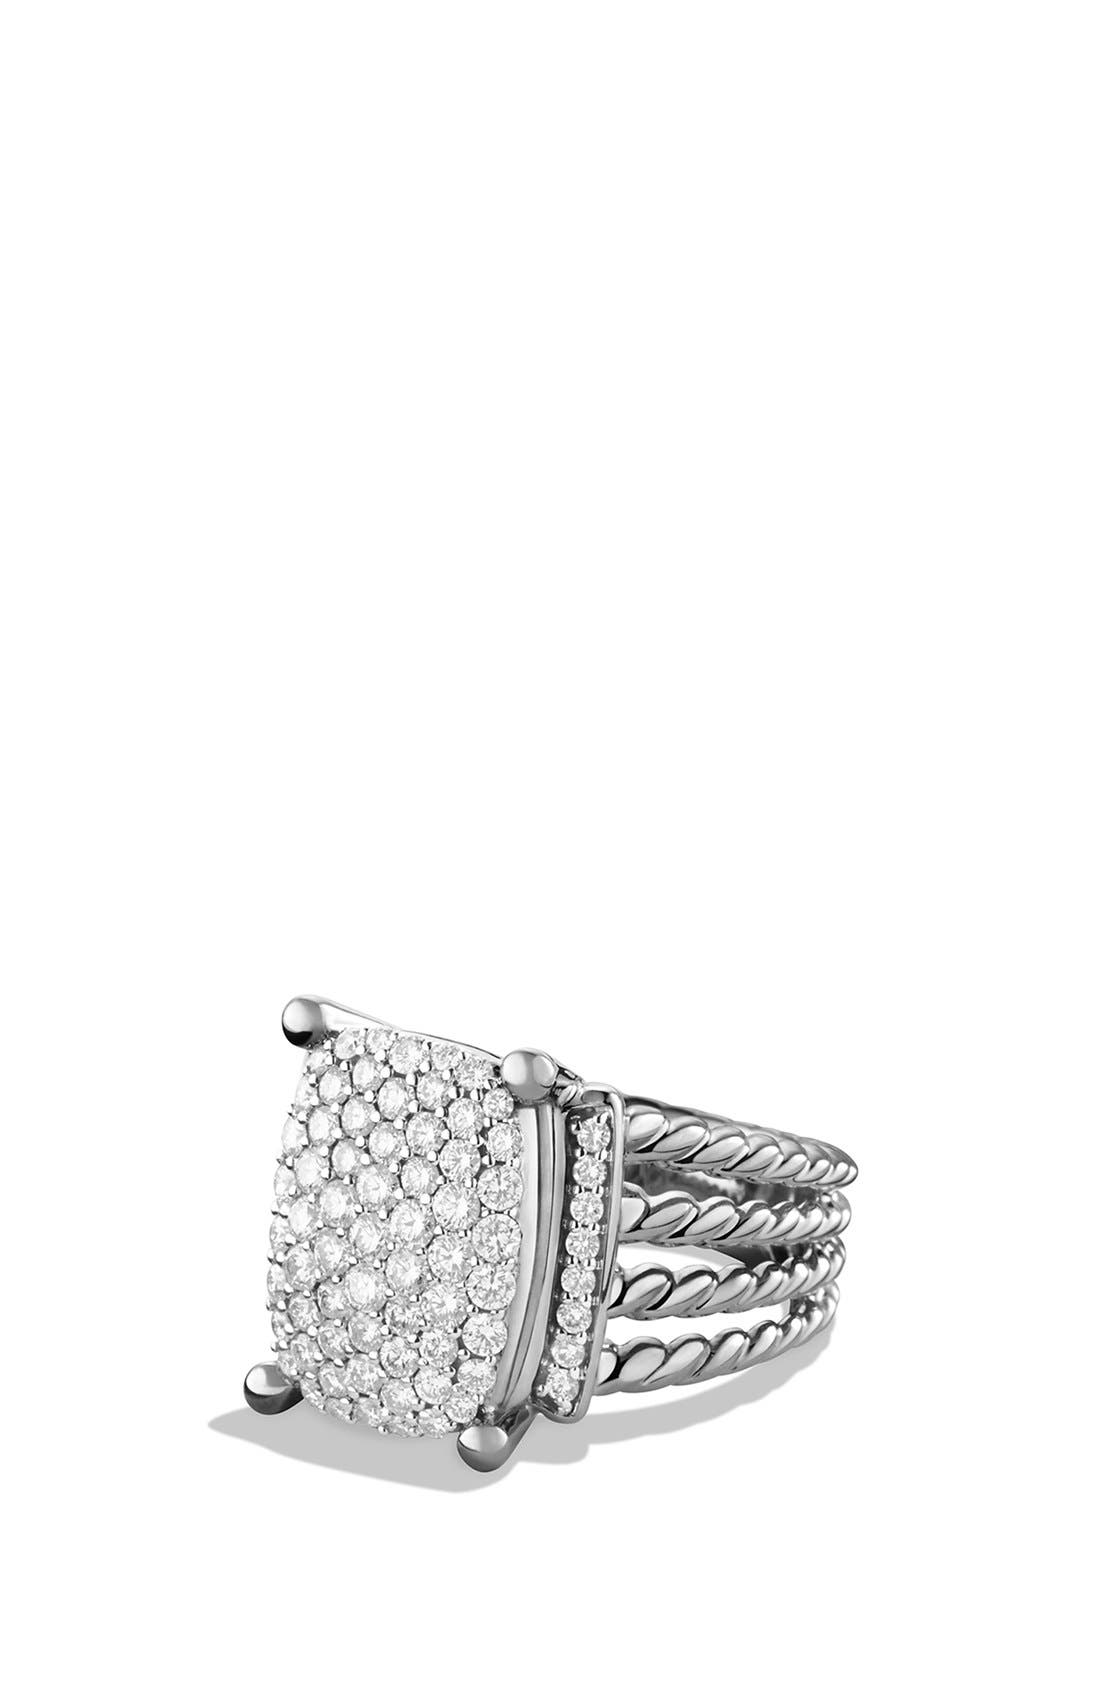 David Yurman 'Wheaton' Ring with Diamonds